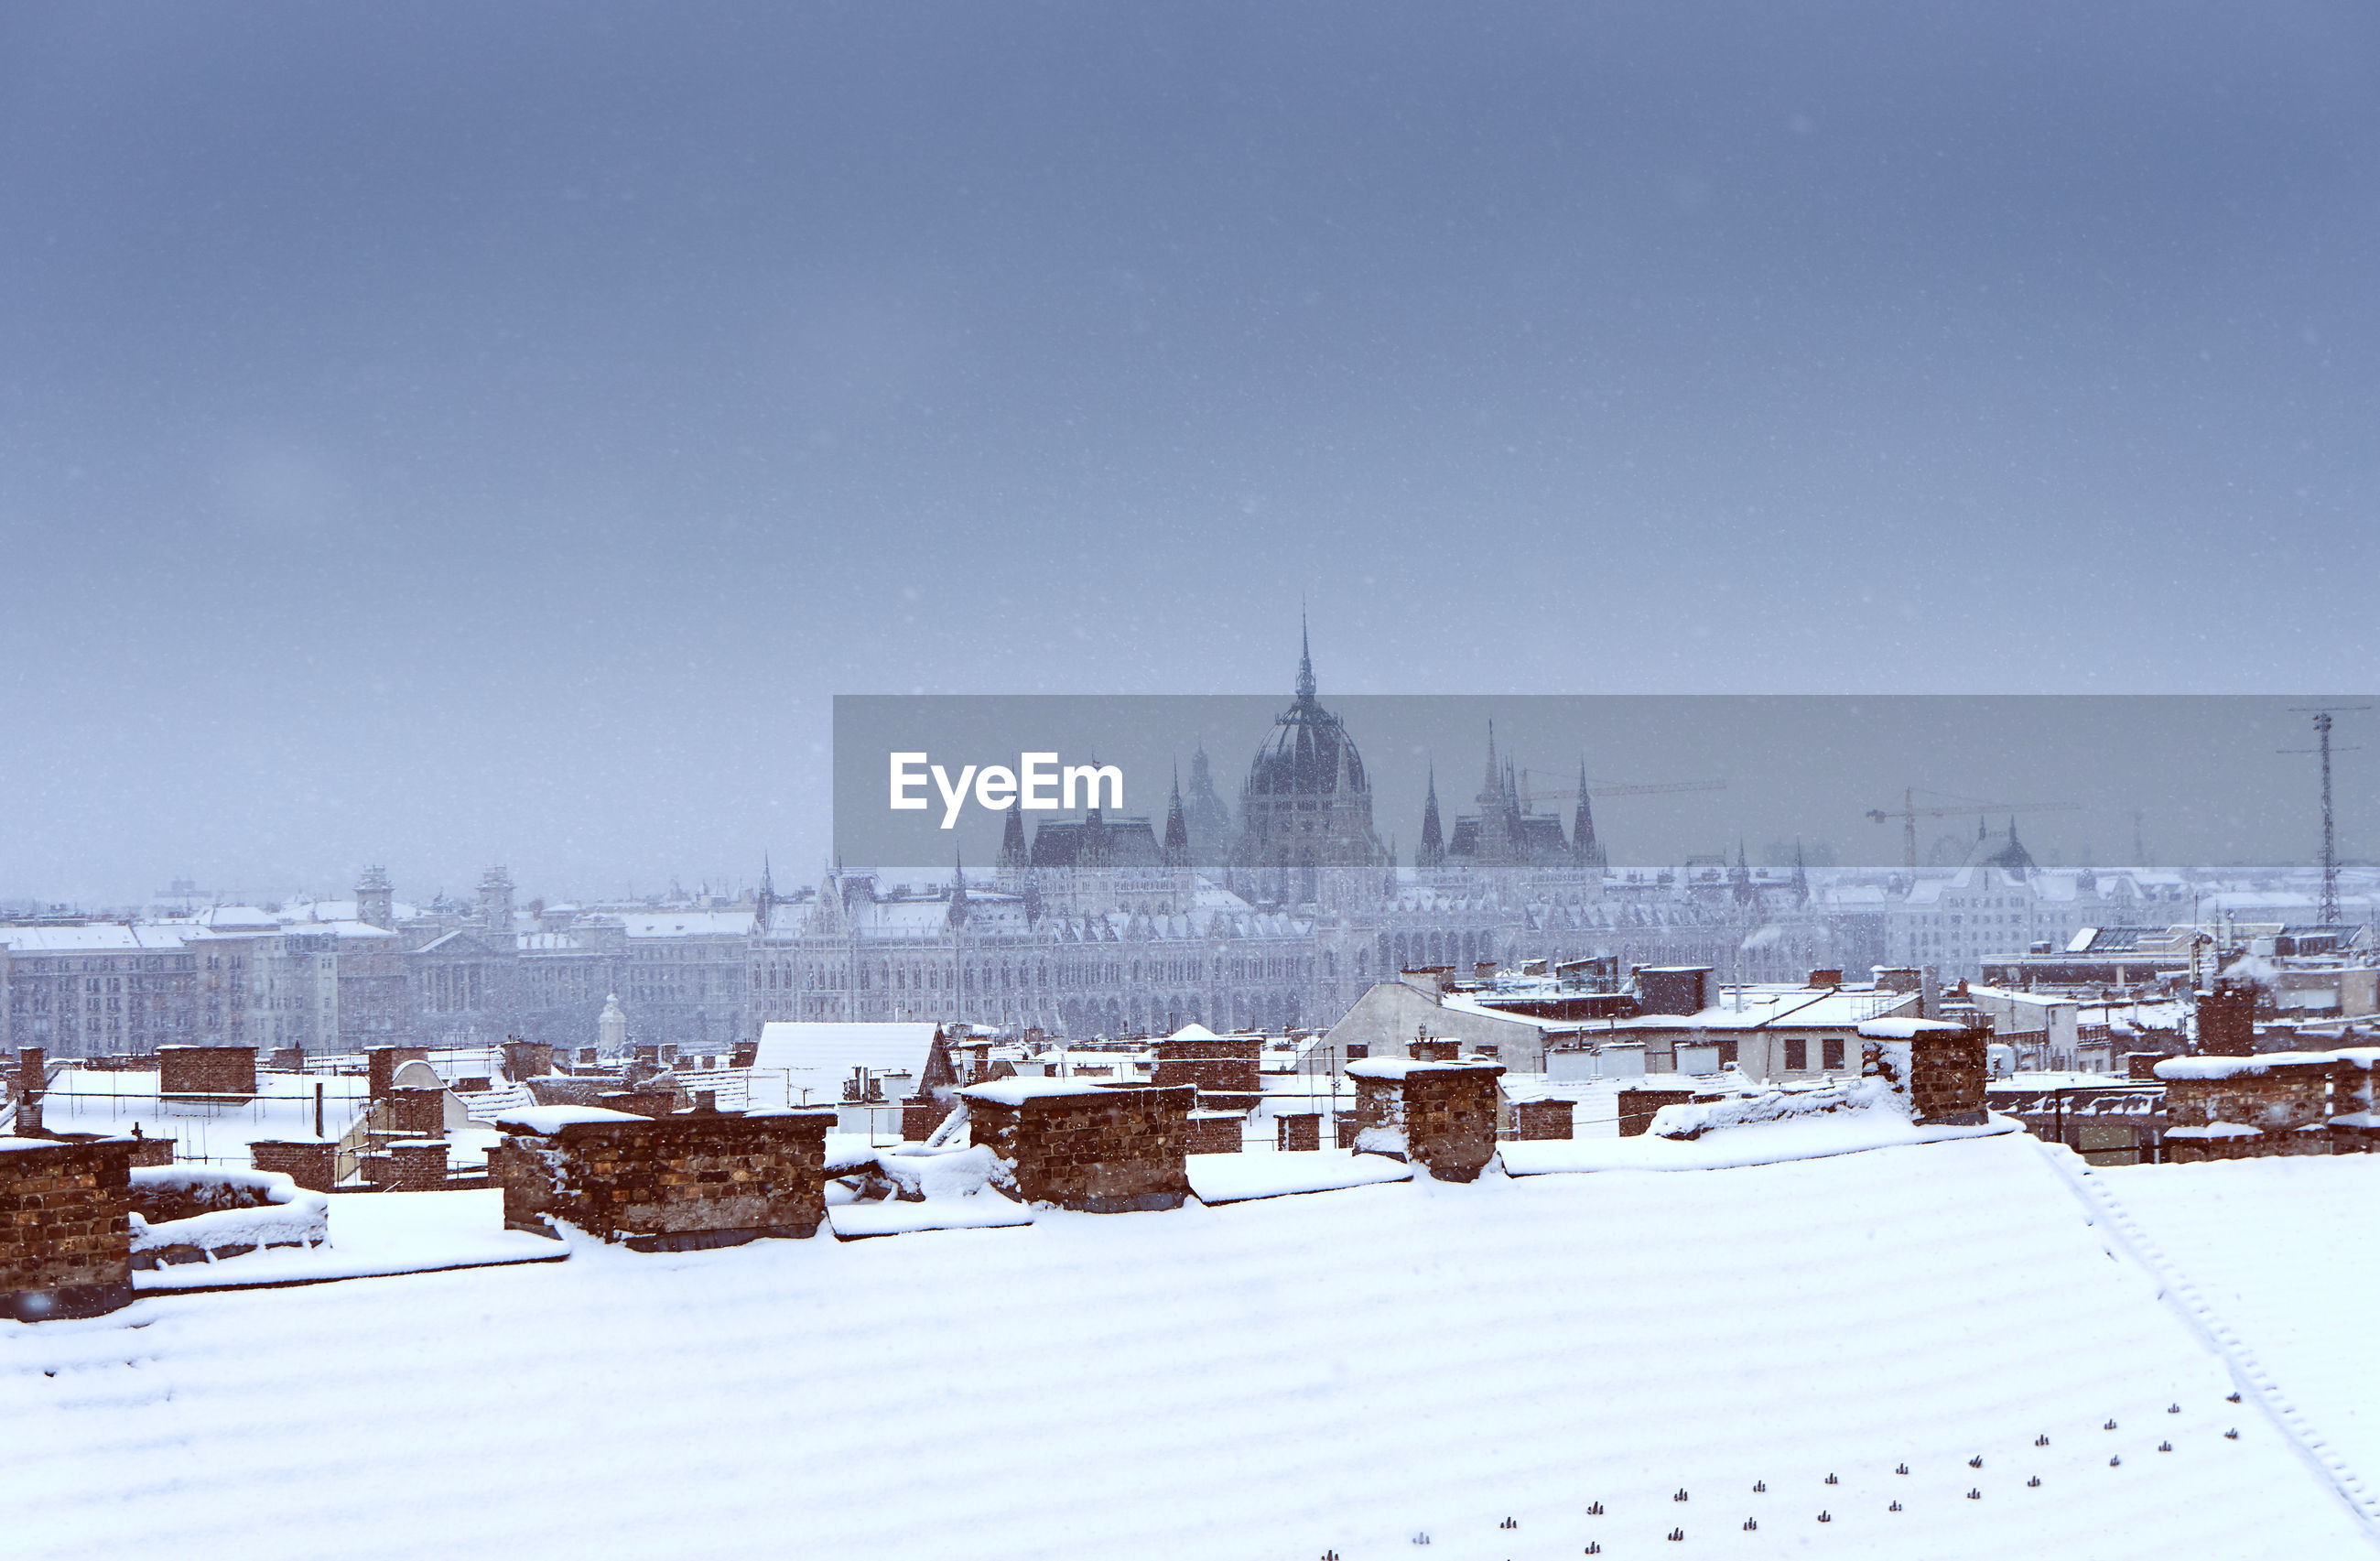 View of buildings against clear sky during winter